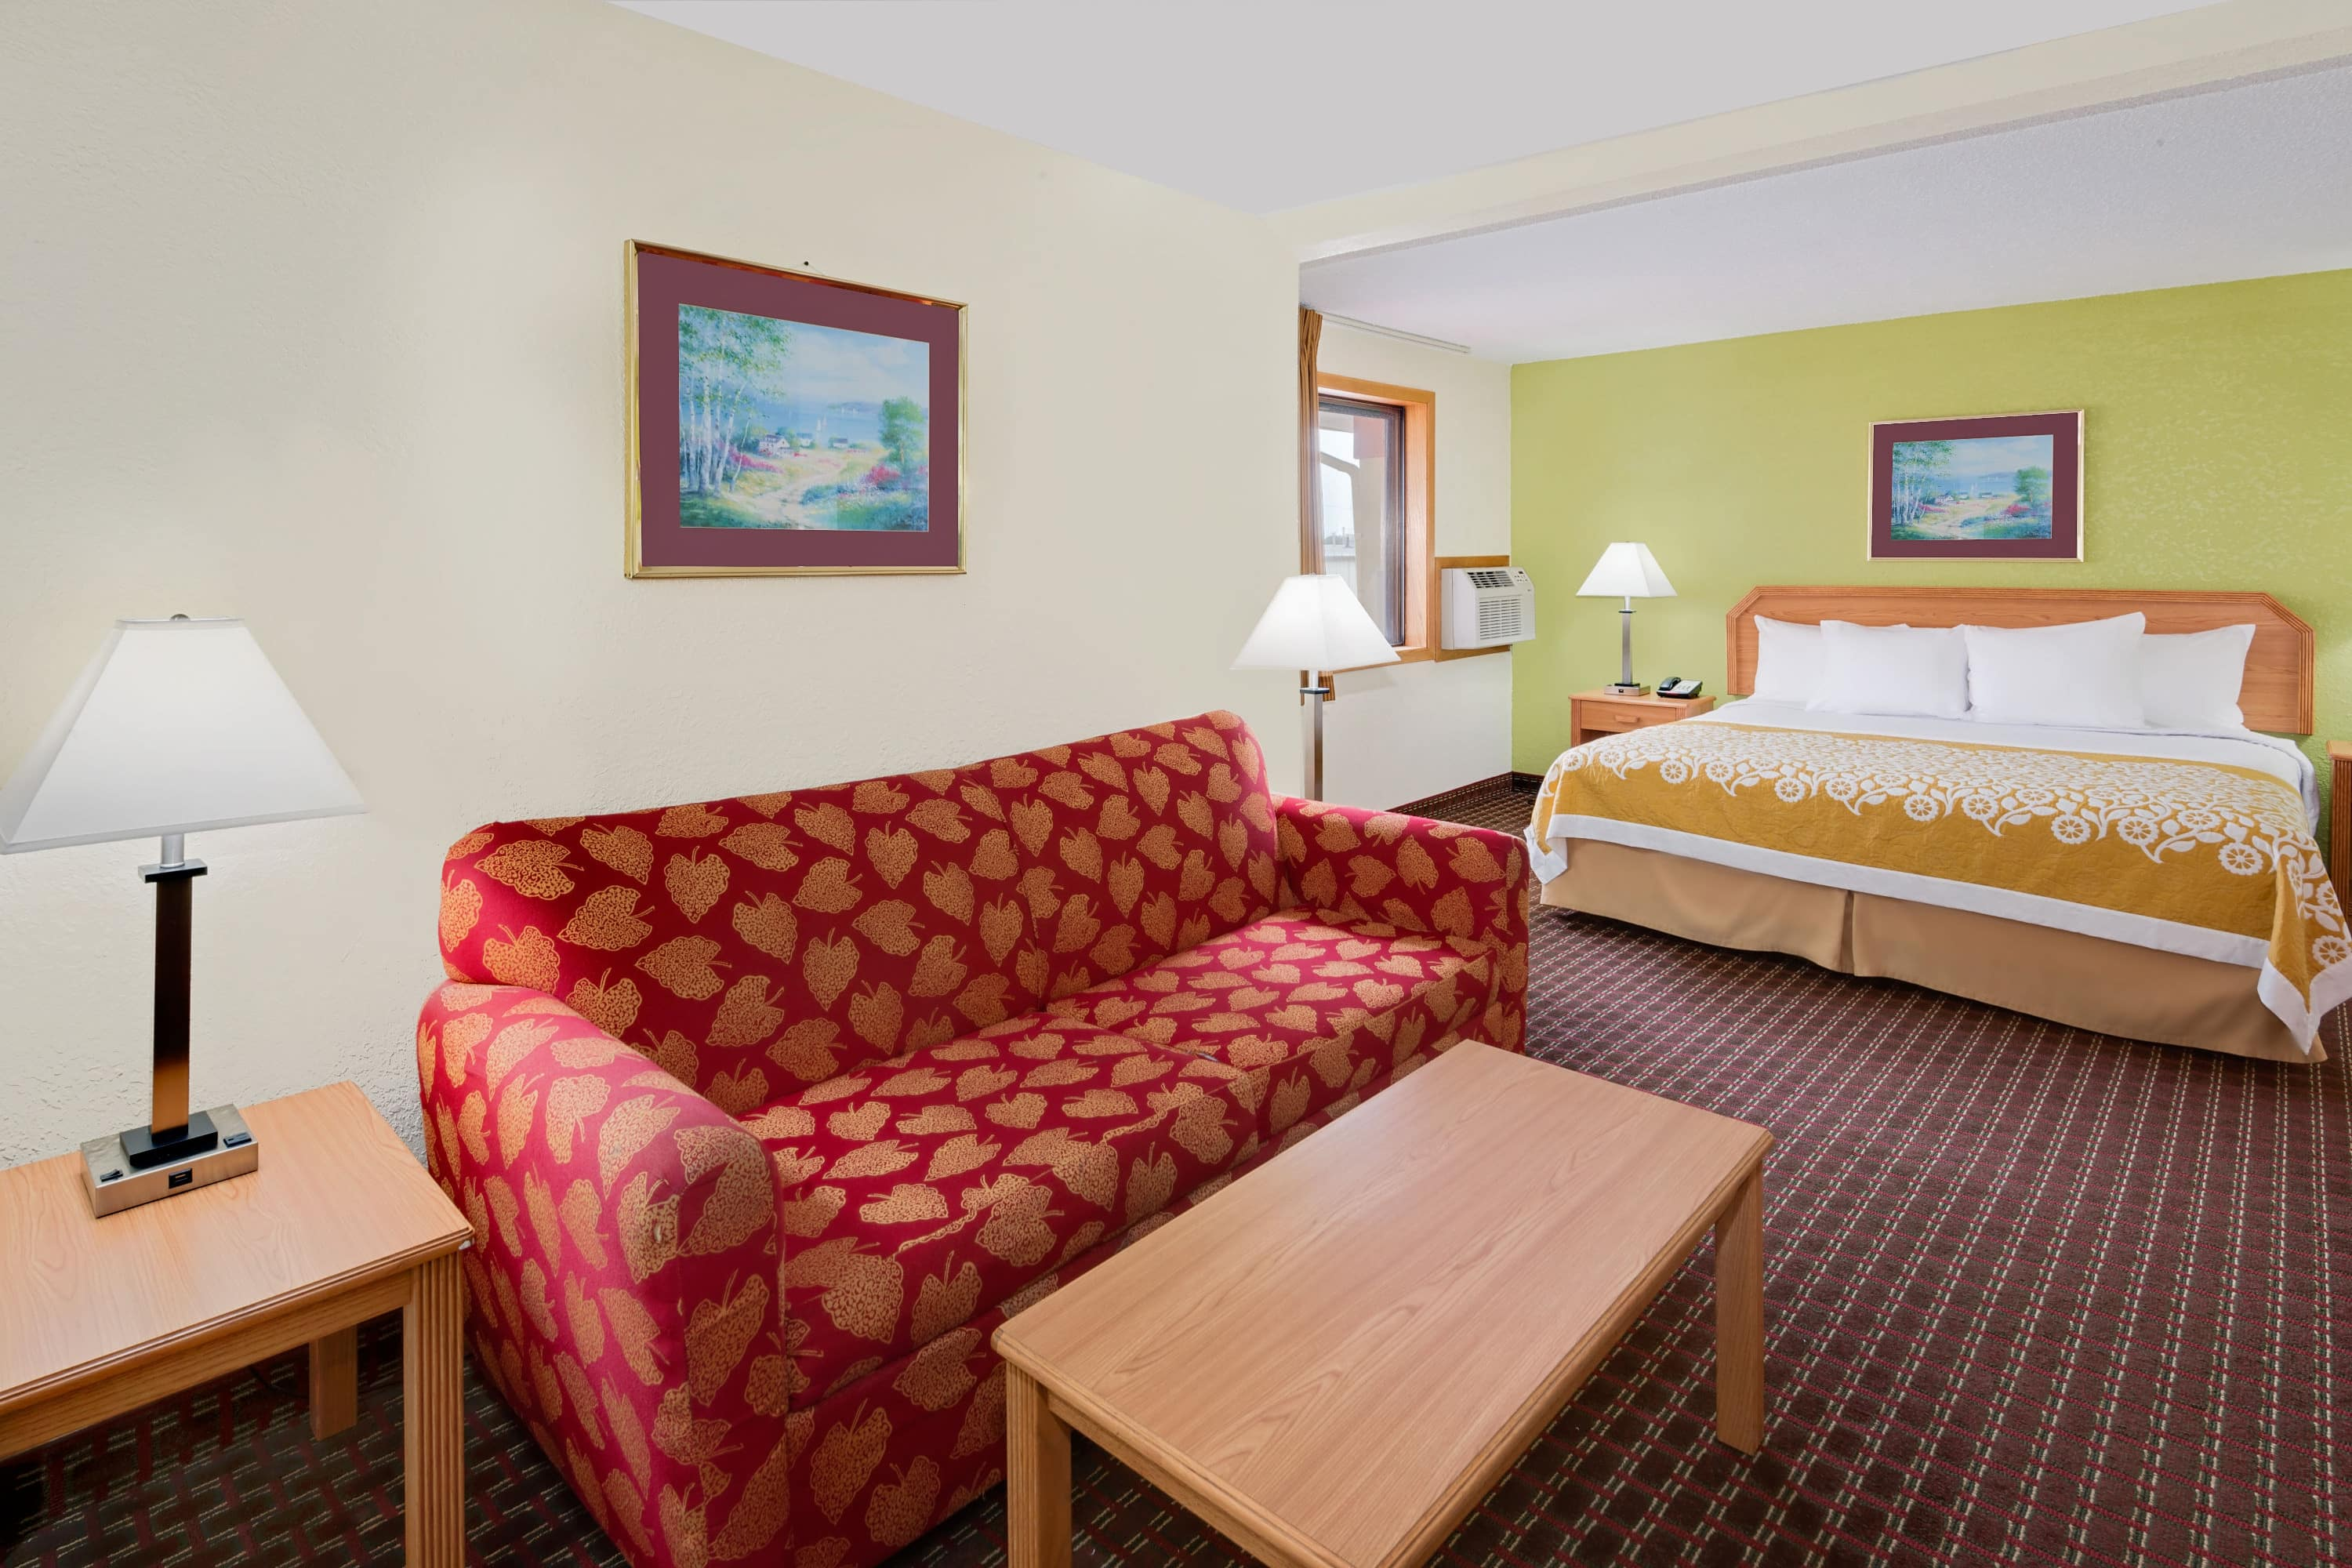 Days Inn Fort Dodge suite in Fort Dodge, Iowa